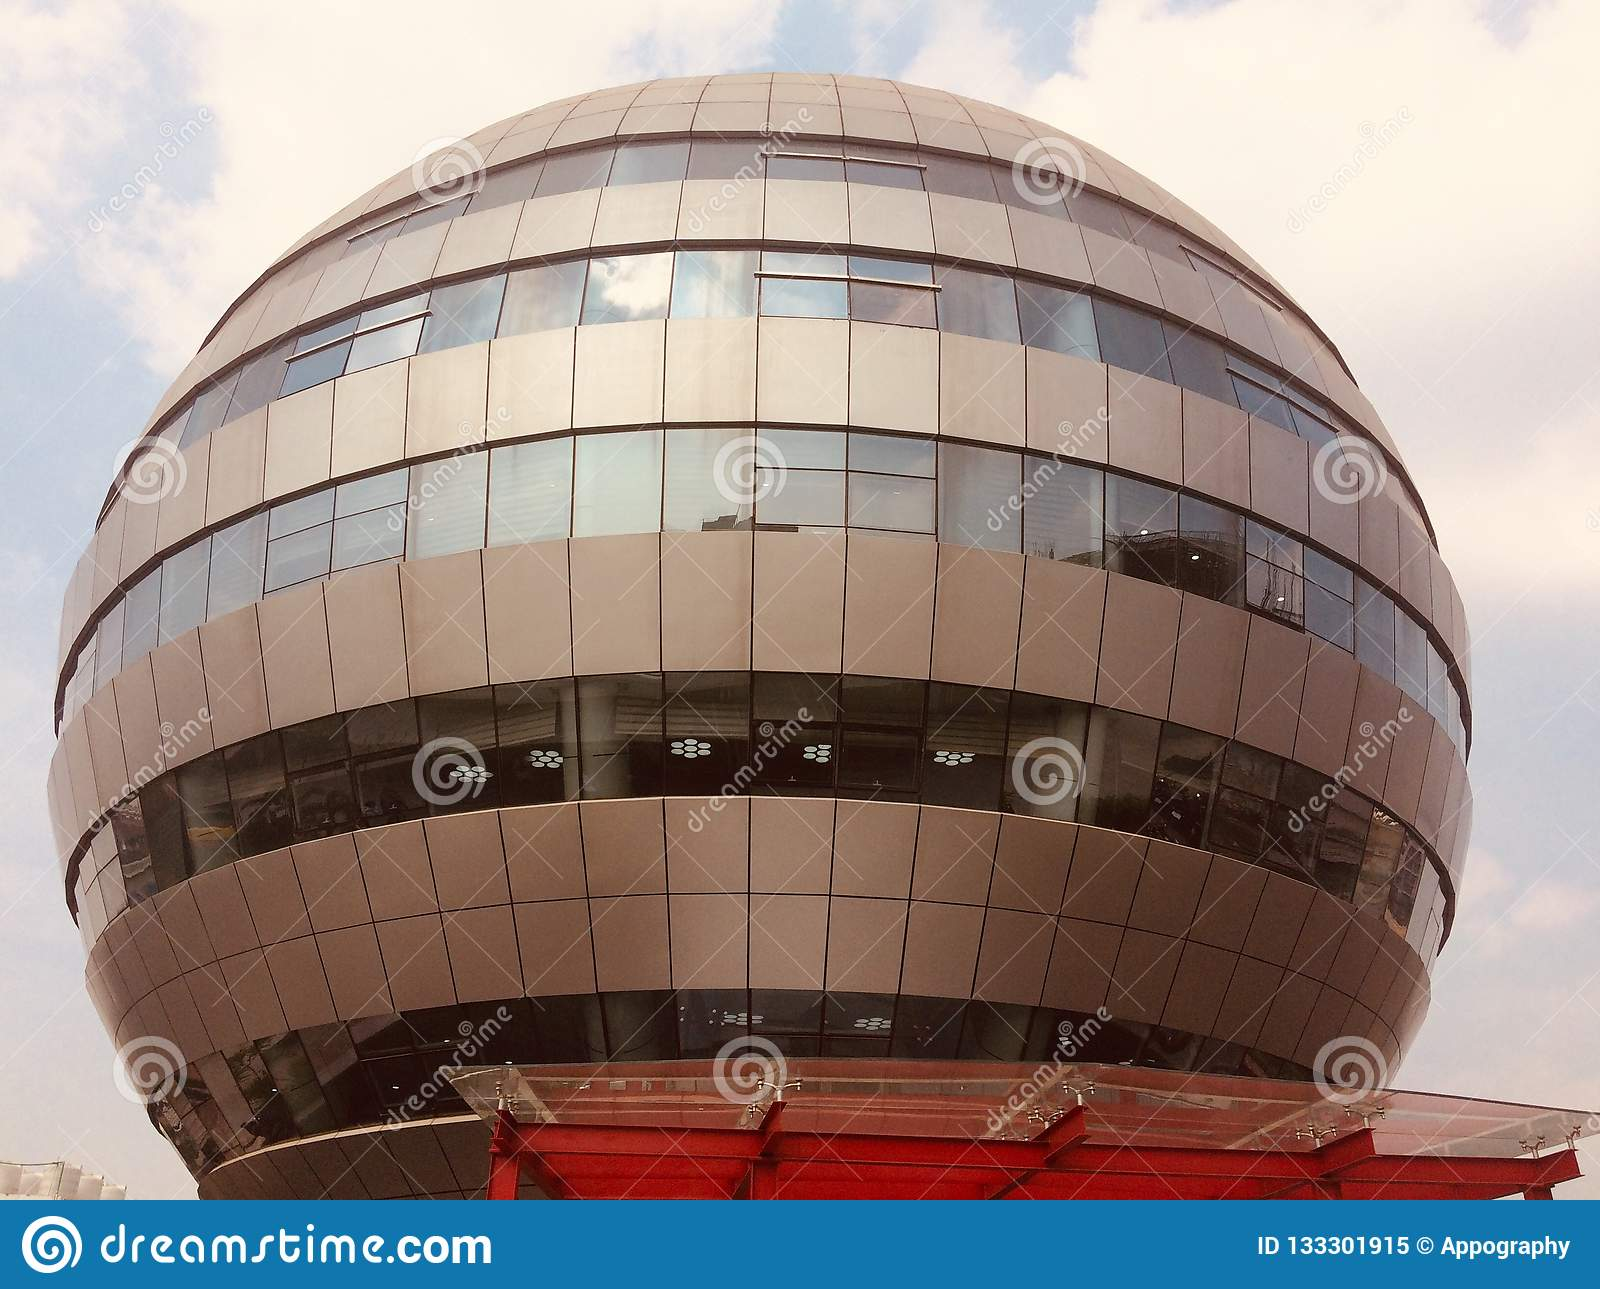 A round shape architectural building